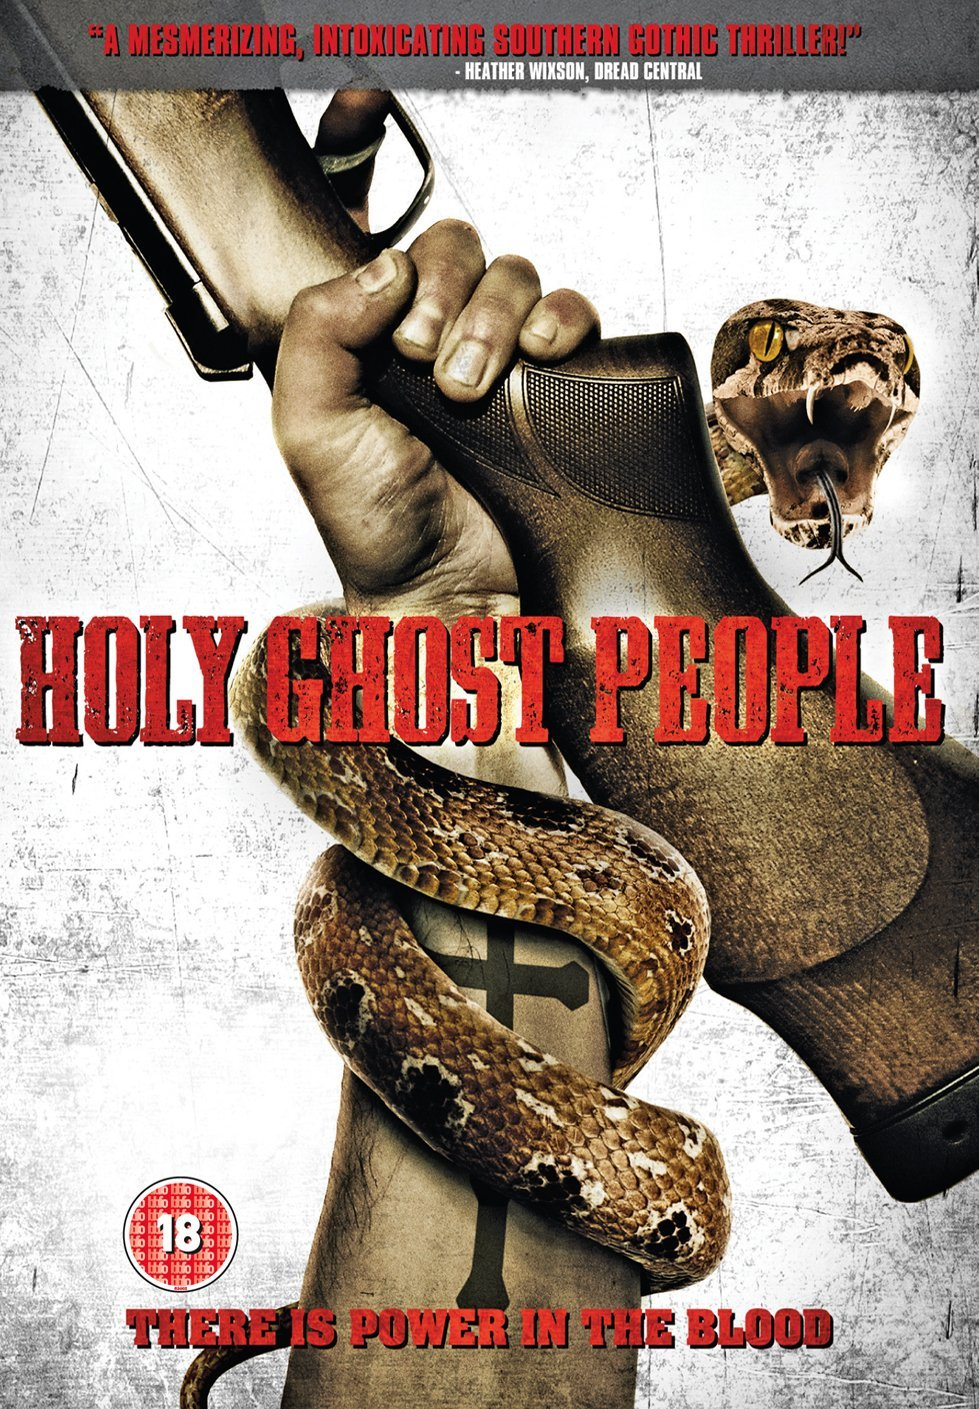 Holy Ghost People DVD